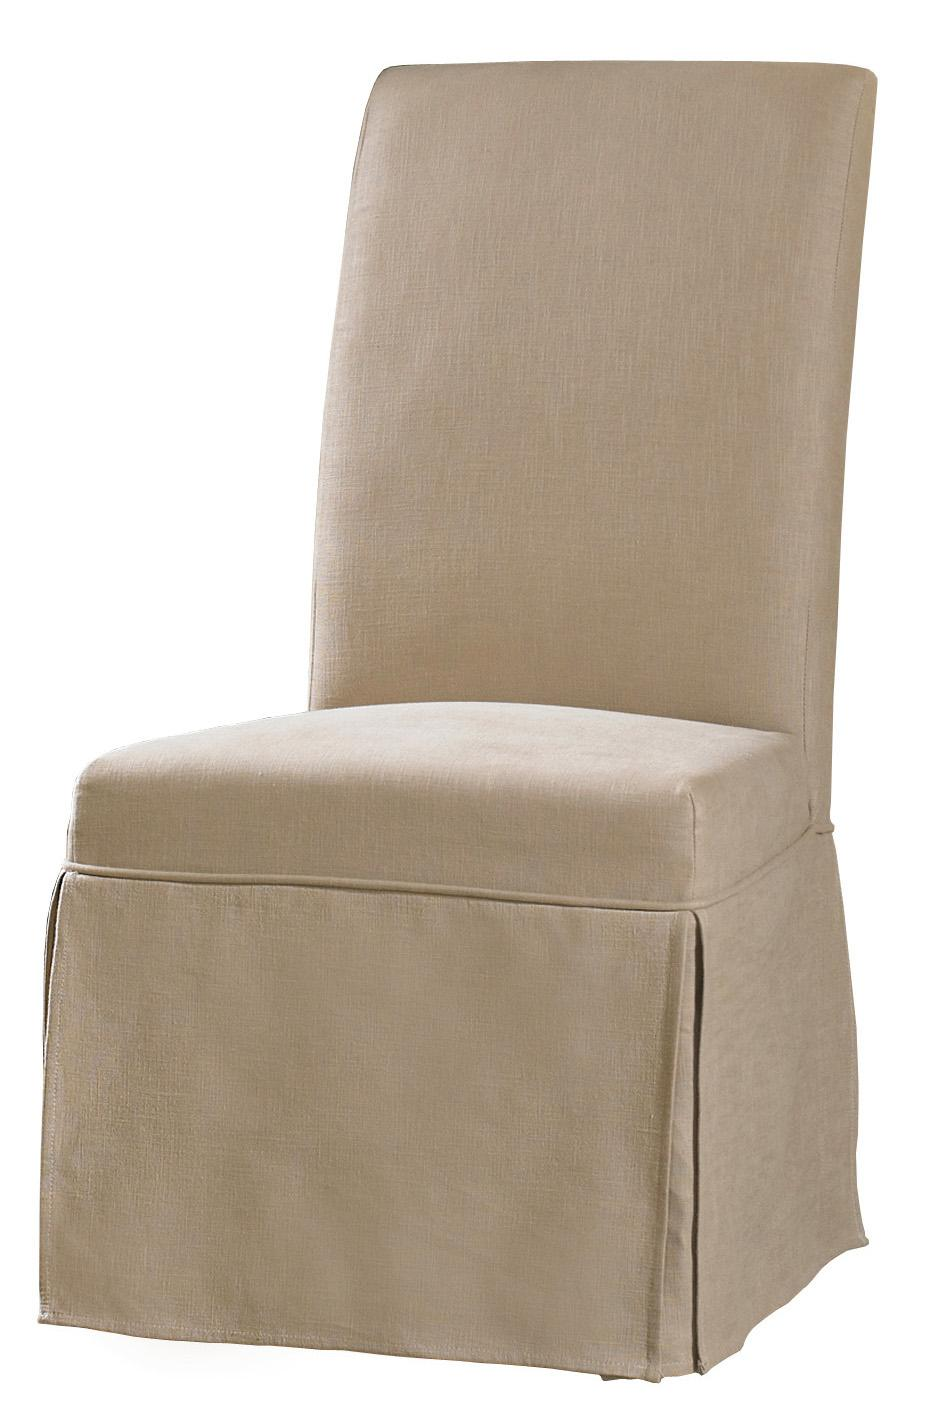 Hooker Furniture Decorator Chairs Clarice Skirted Chair - Item Number: 200-36-072